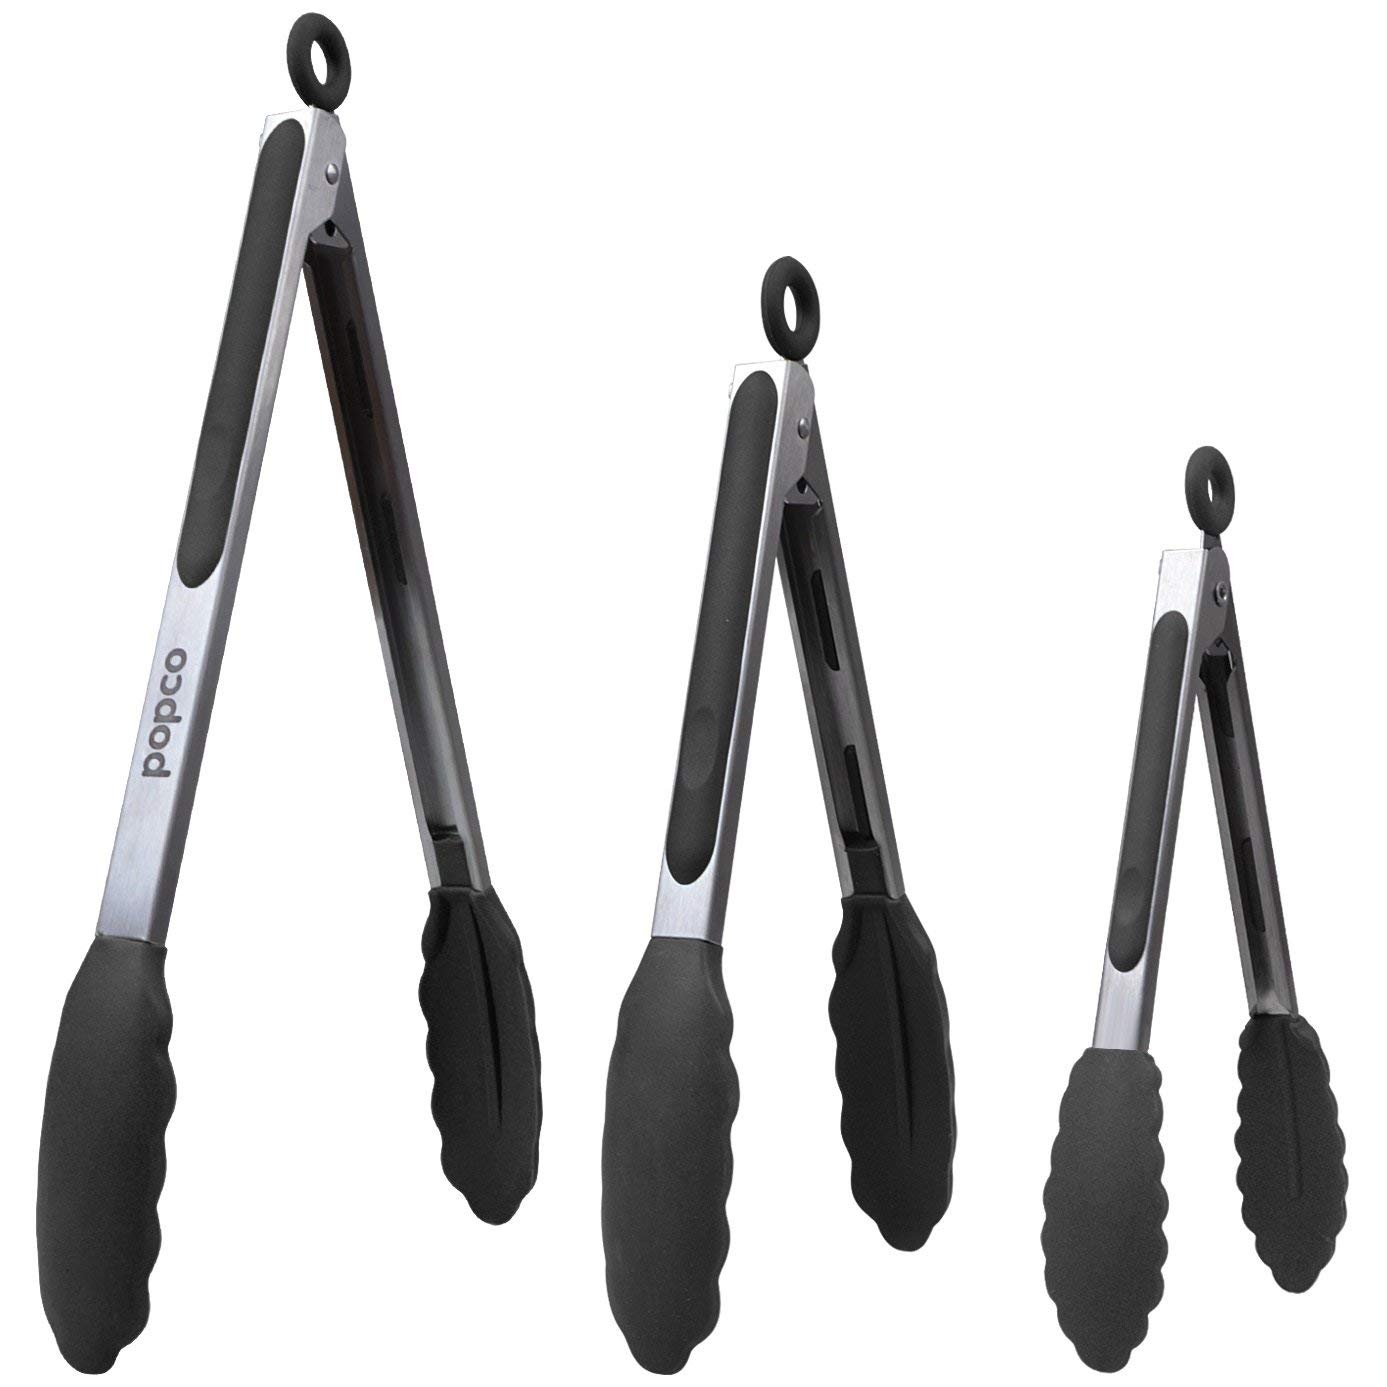 The Original POPCO Tongs, Set of 3-7,9,12 Inch, Heavy Duty, Stainless Steel BBQ/Kitchen Tongs with Silicone Tips